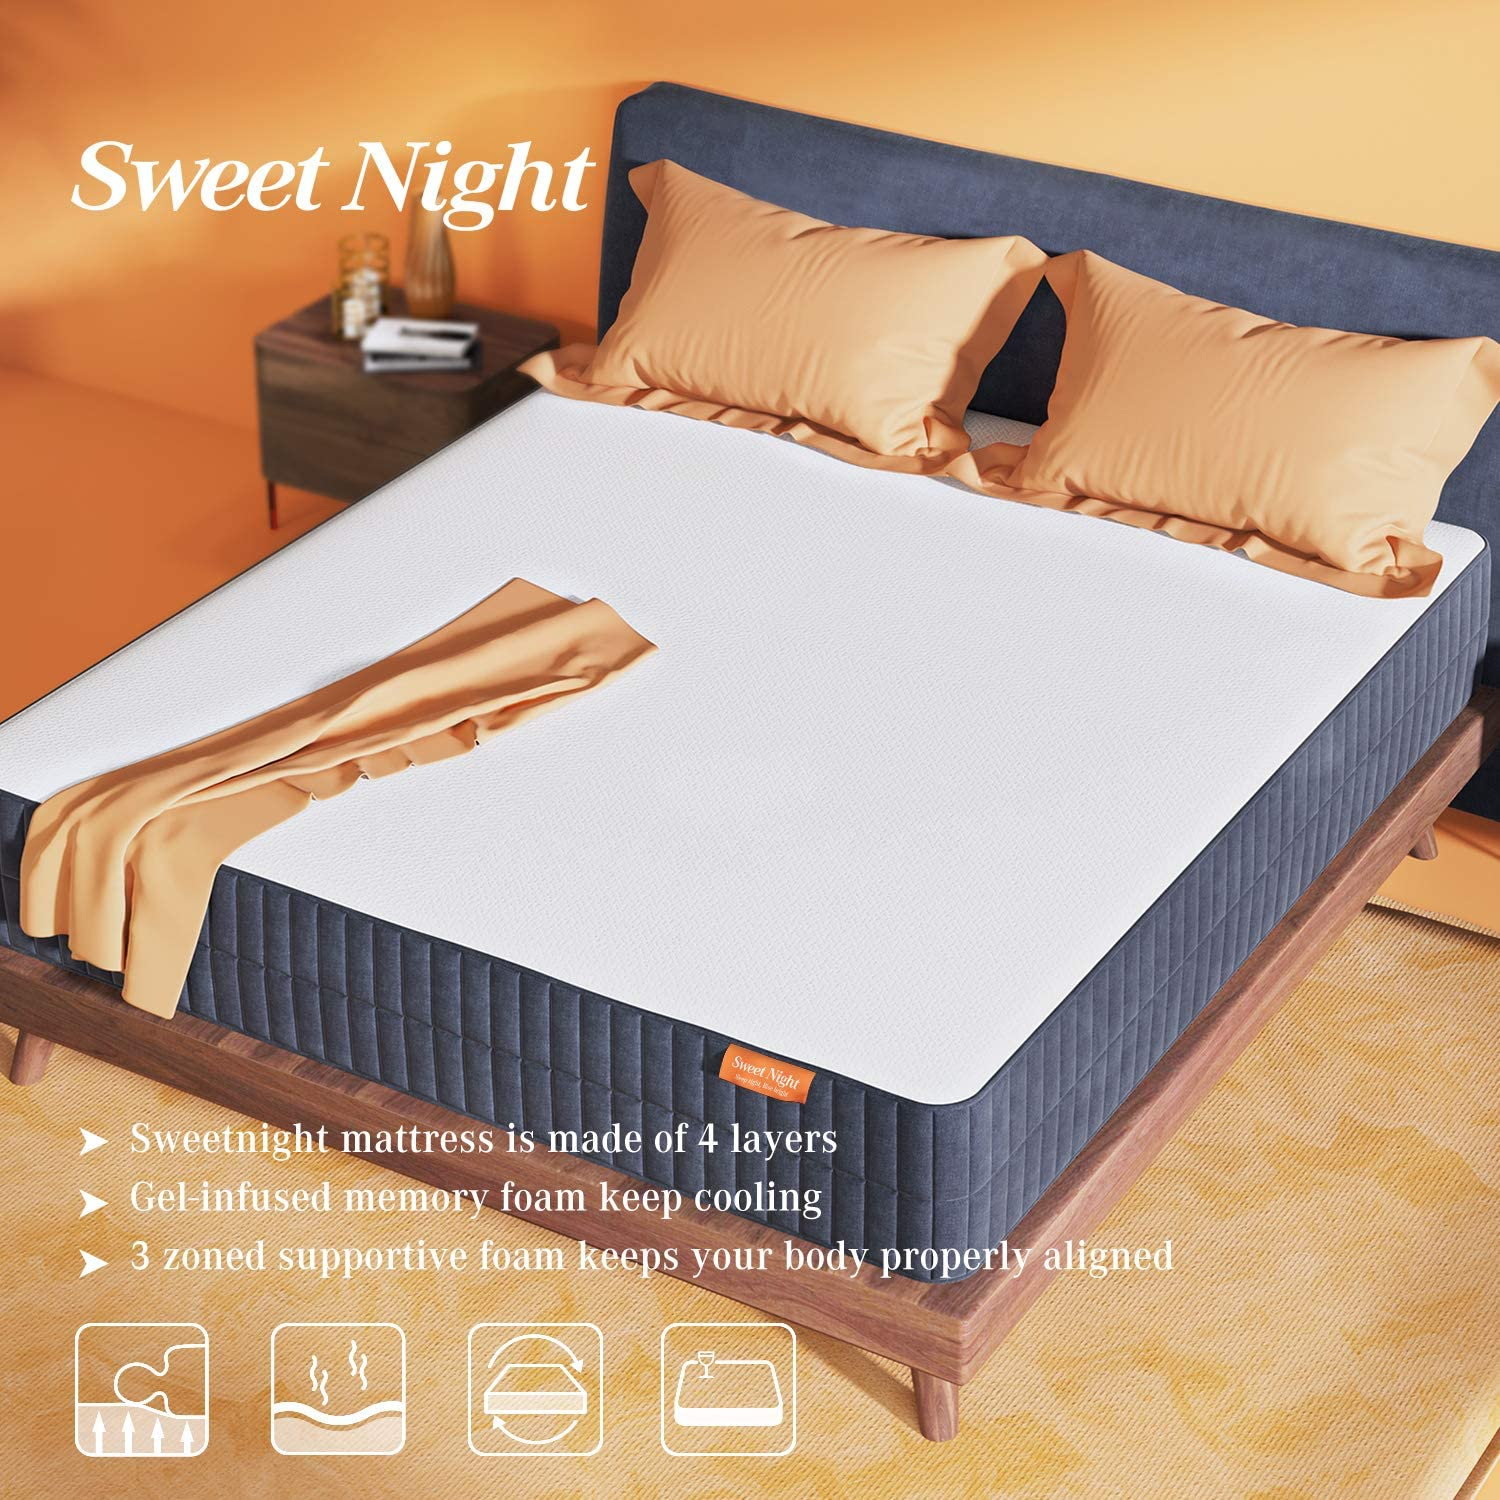 Flip Available for Soft or Medium Firm Option Full Size CertiPUR-US Certified Foam Mattresses for Sleep Cool /& Supportive Sweetnight 10 Inch Gel Memory Foam Mattress in a Box Full Size Mattress